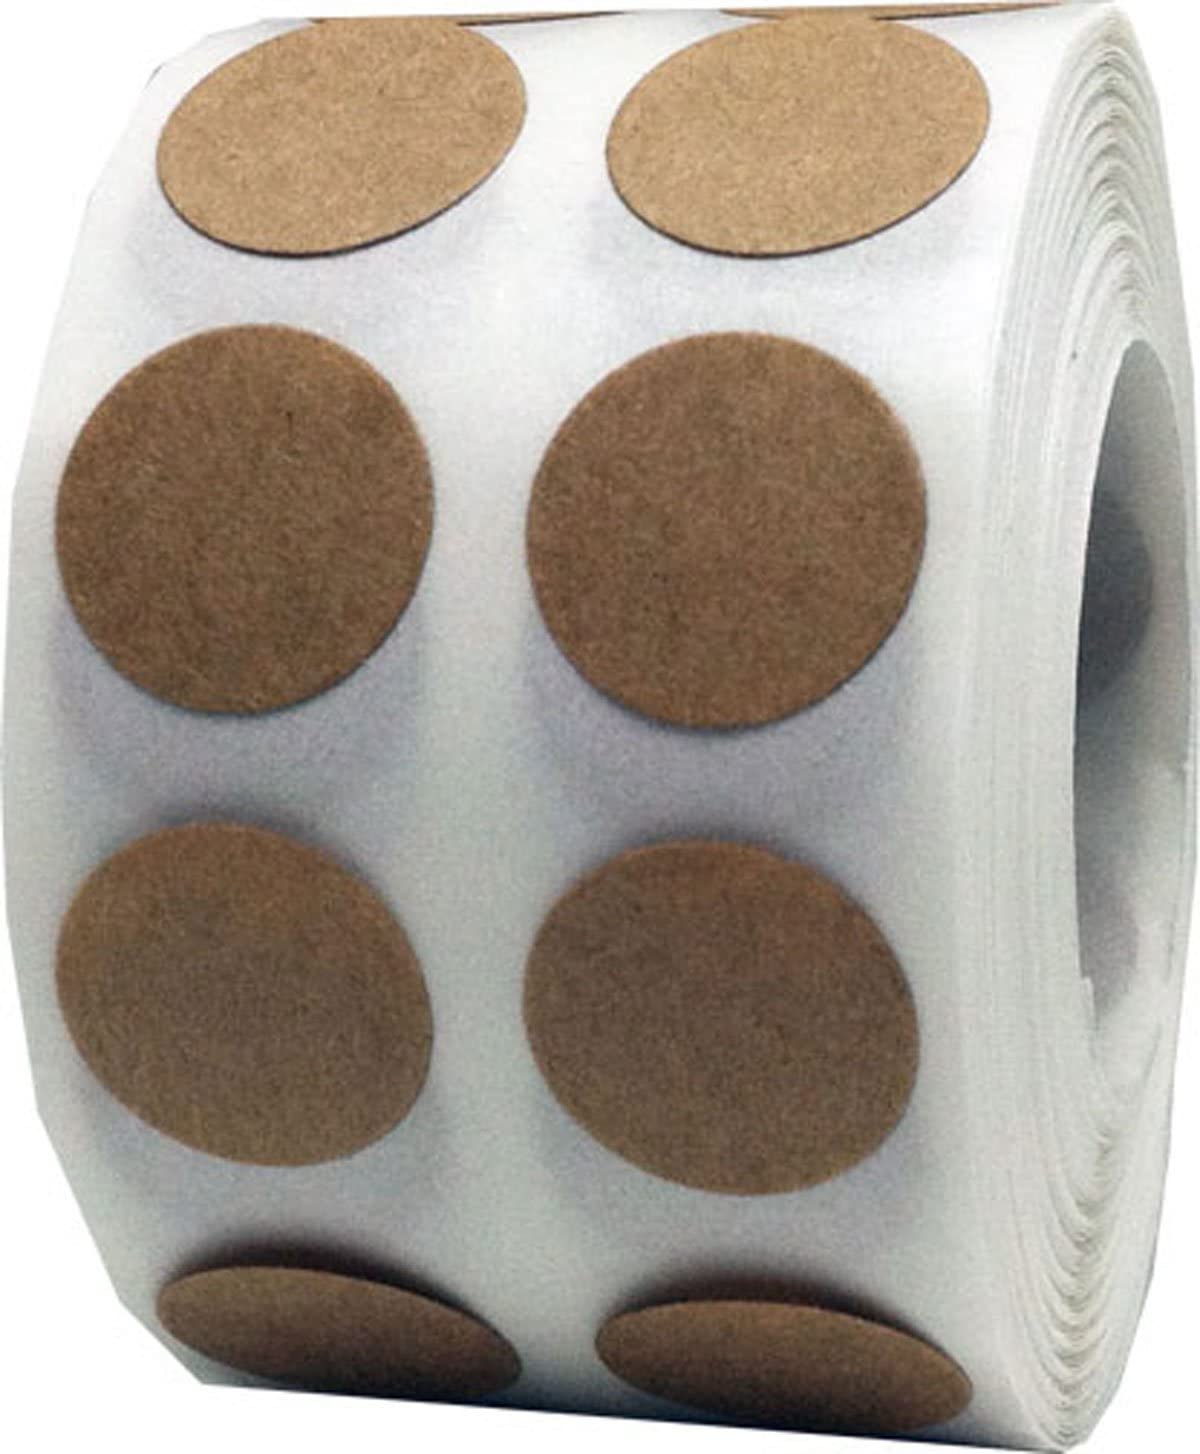 Brown Natural Kraft Color Coding Labels for Organizing Inventory 0.50 Inch Round Circle Dots 1,000 Total Adhesive Stickers On A Roll